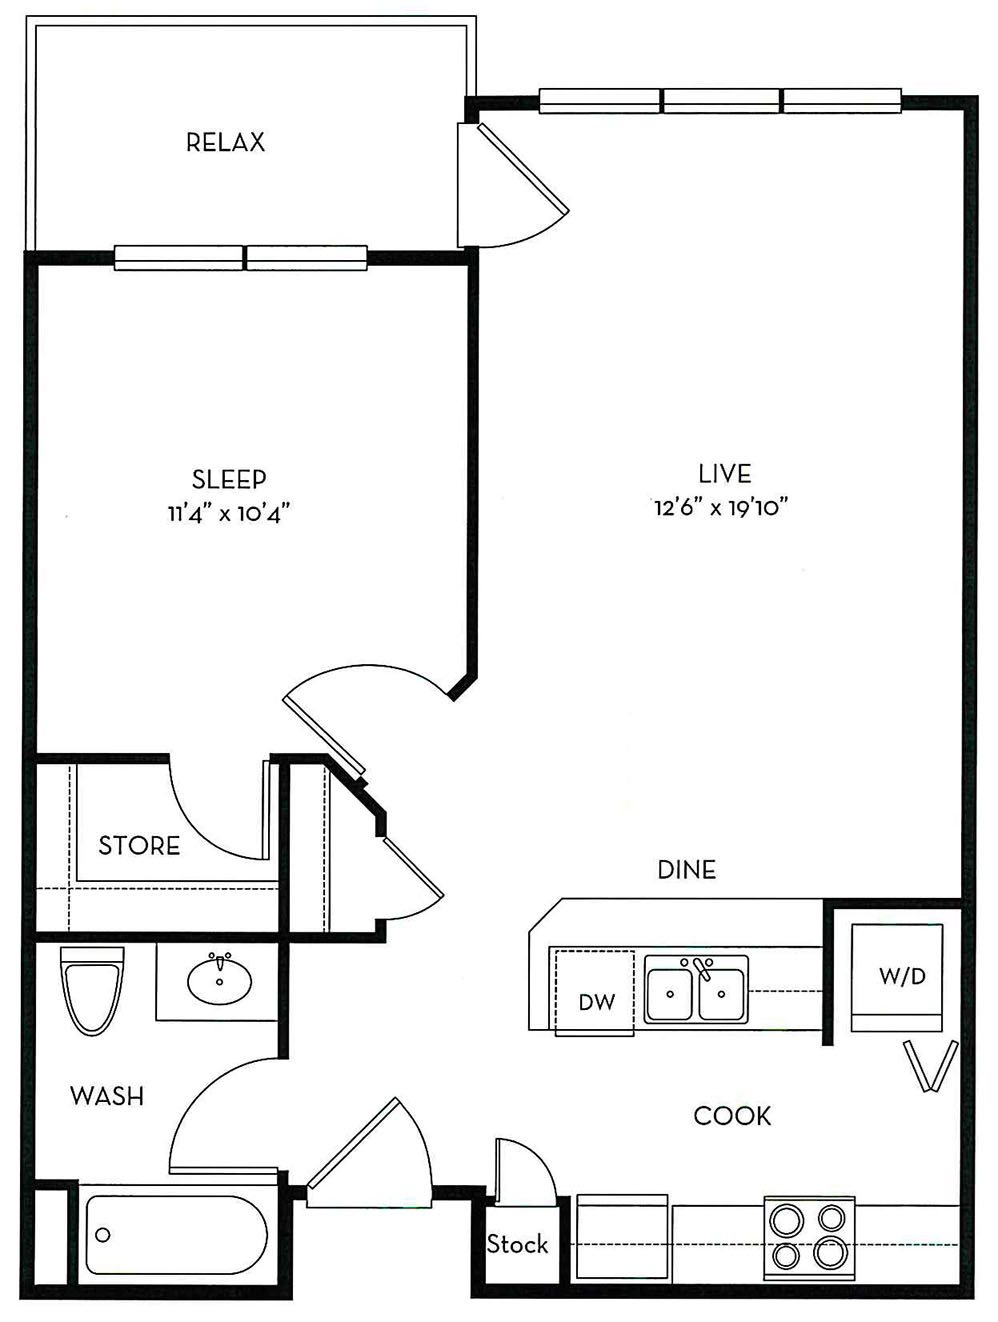 Captiva Floor Plan 5